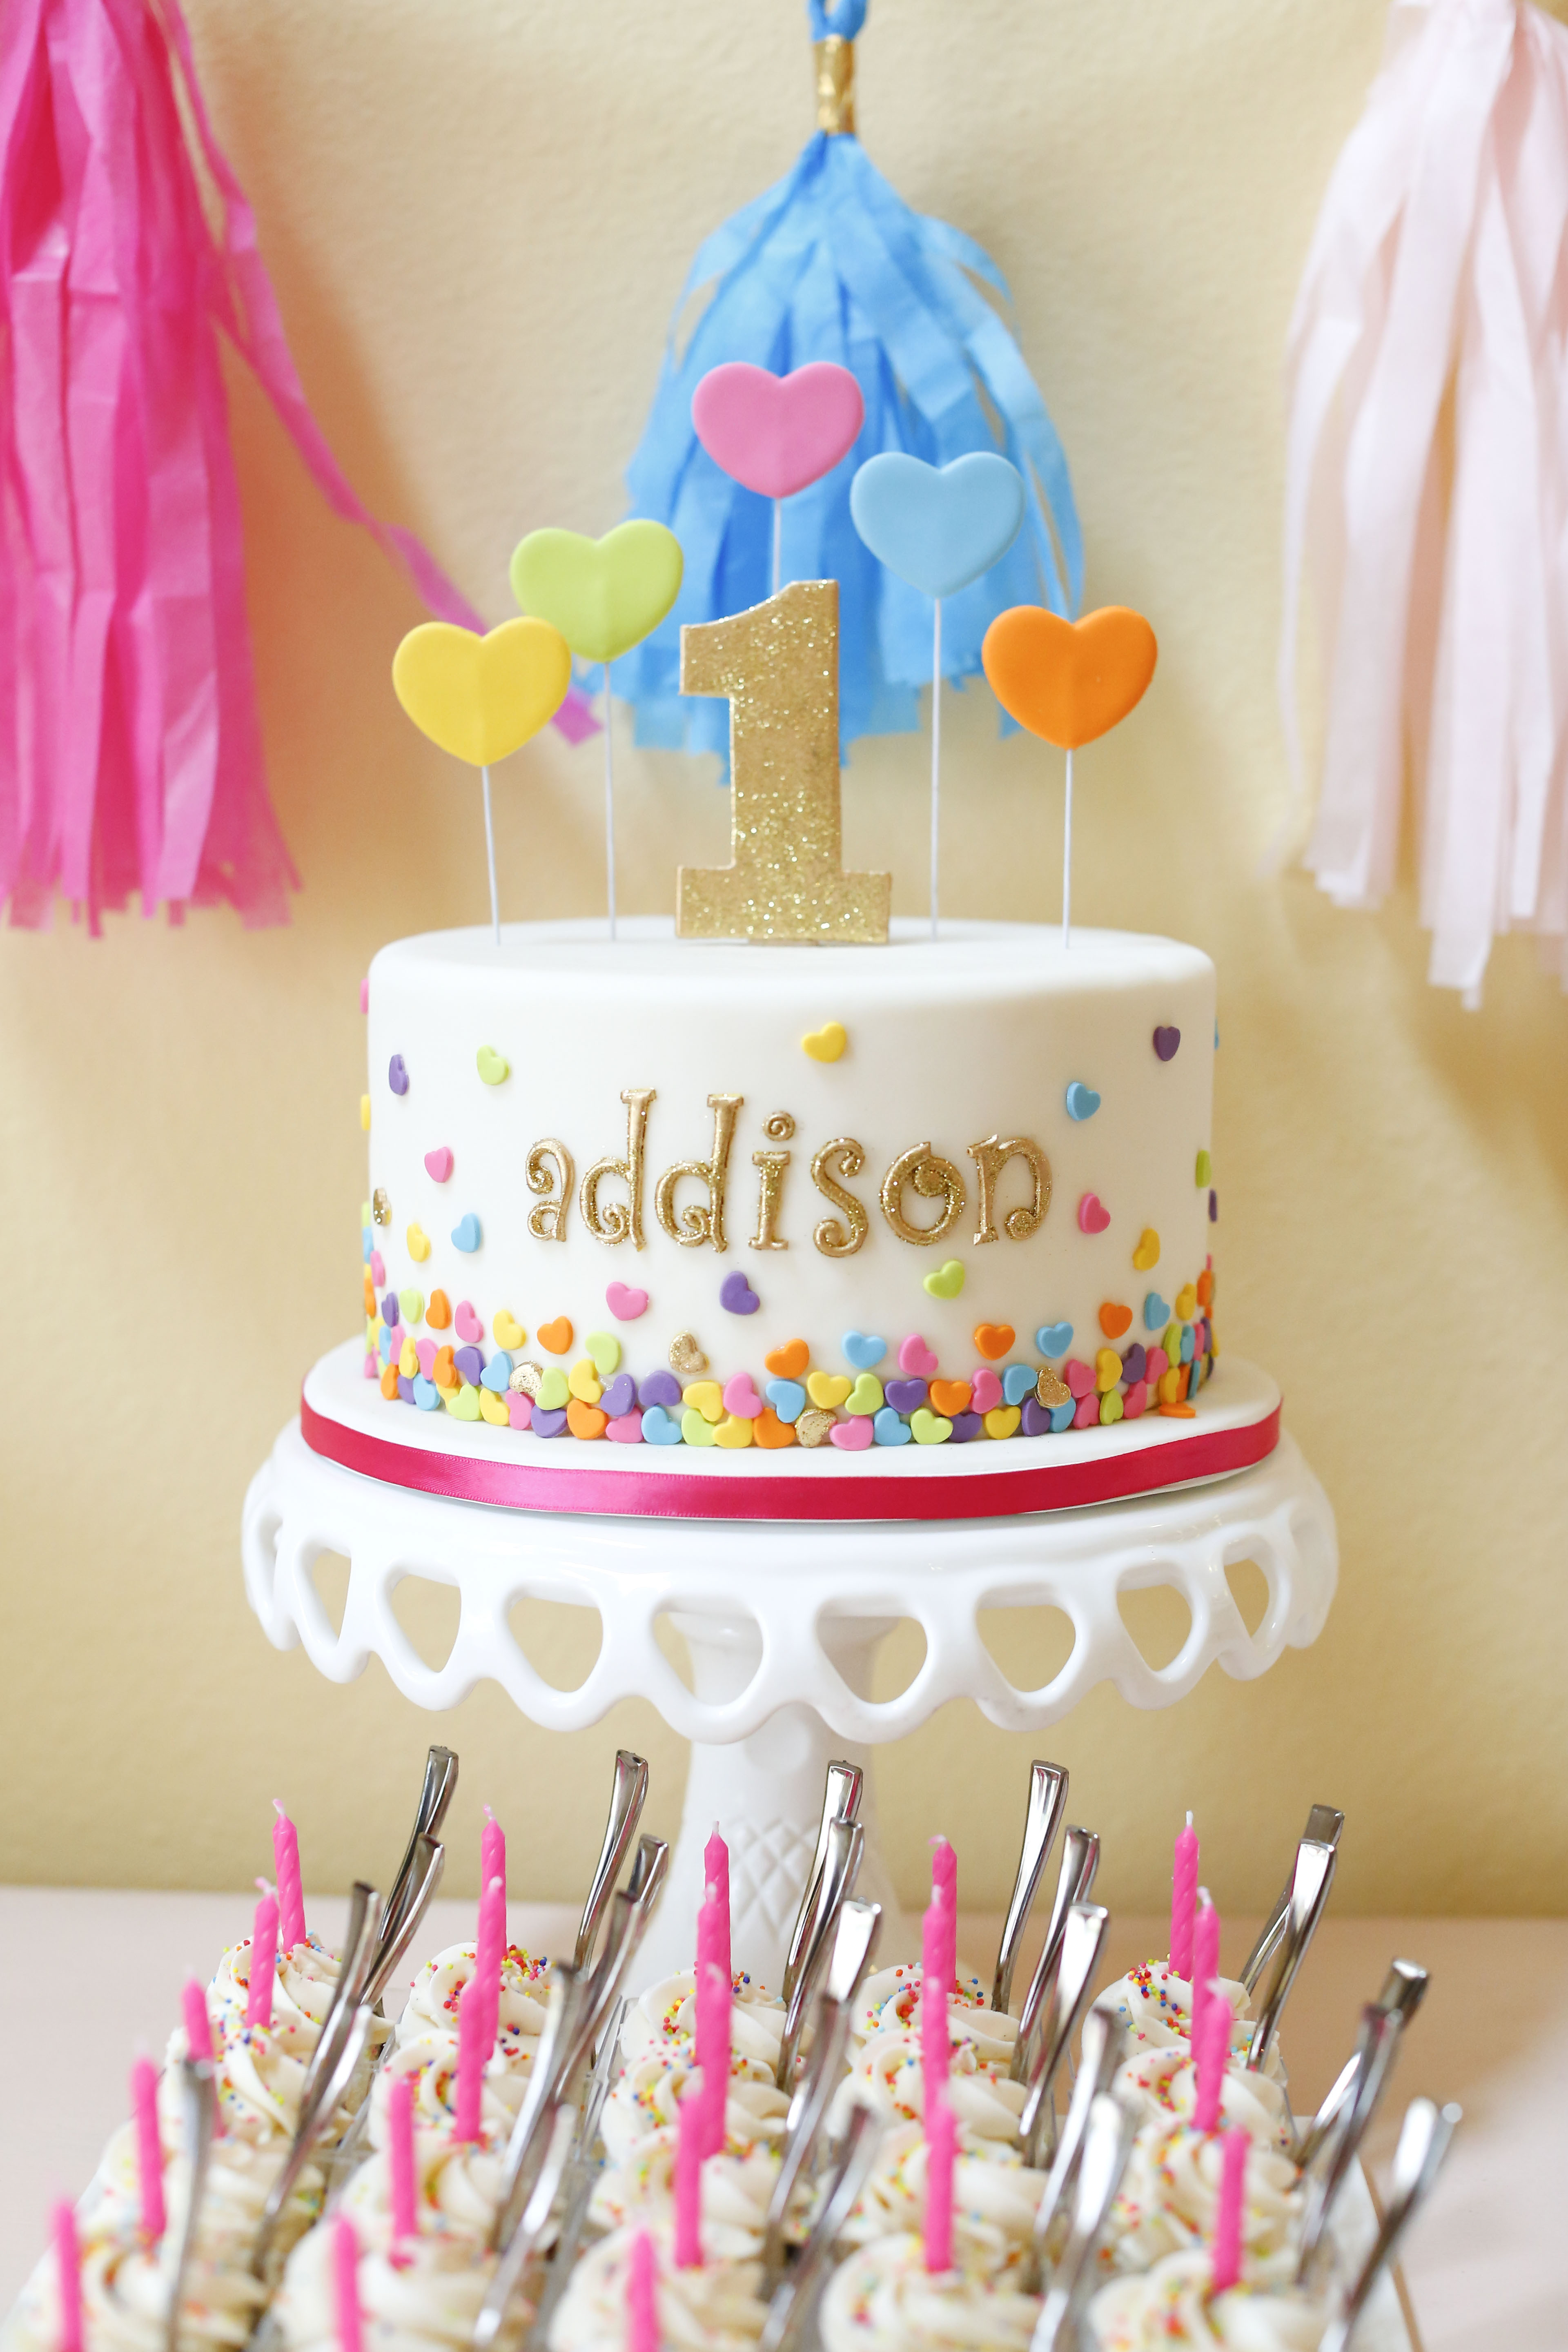 Best ideas about Birthday Party Project . Save or Pin DeAnna Pappas Daughter s Birthday Party Project Nursery Now.